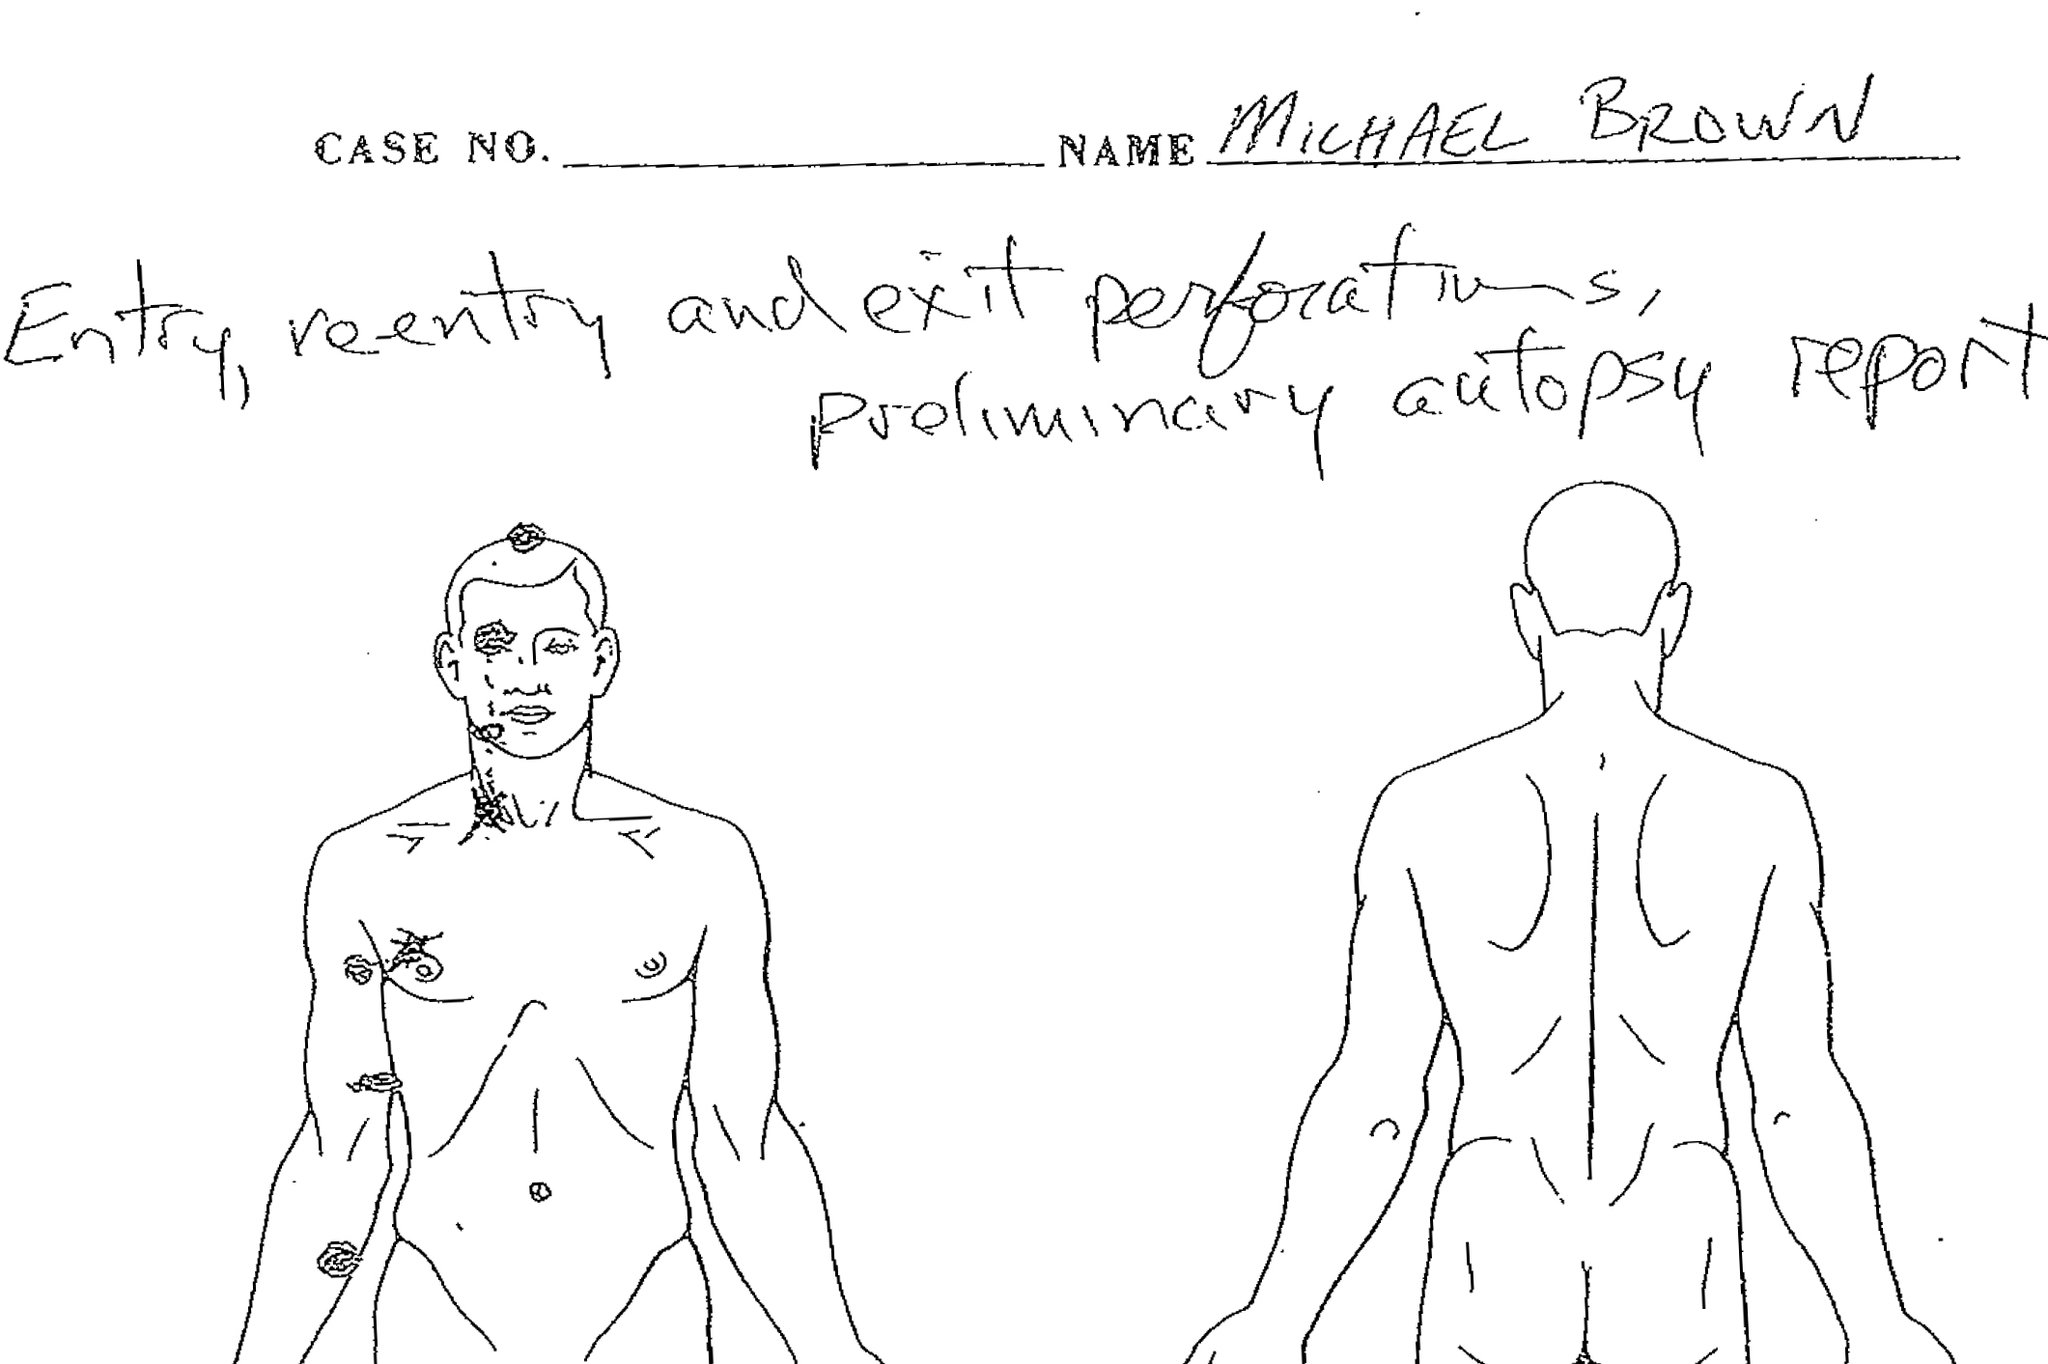 Michael Brown Autopsy 6 shots 2 two head shots shot in head offiical